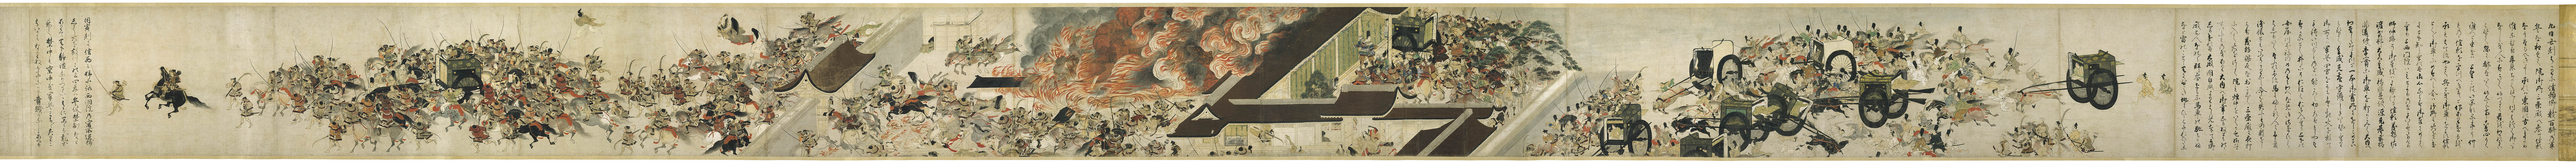 Night Attack on the Sanjo Palace